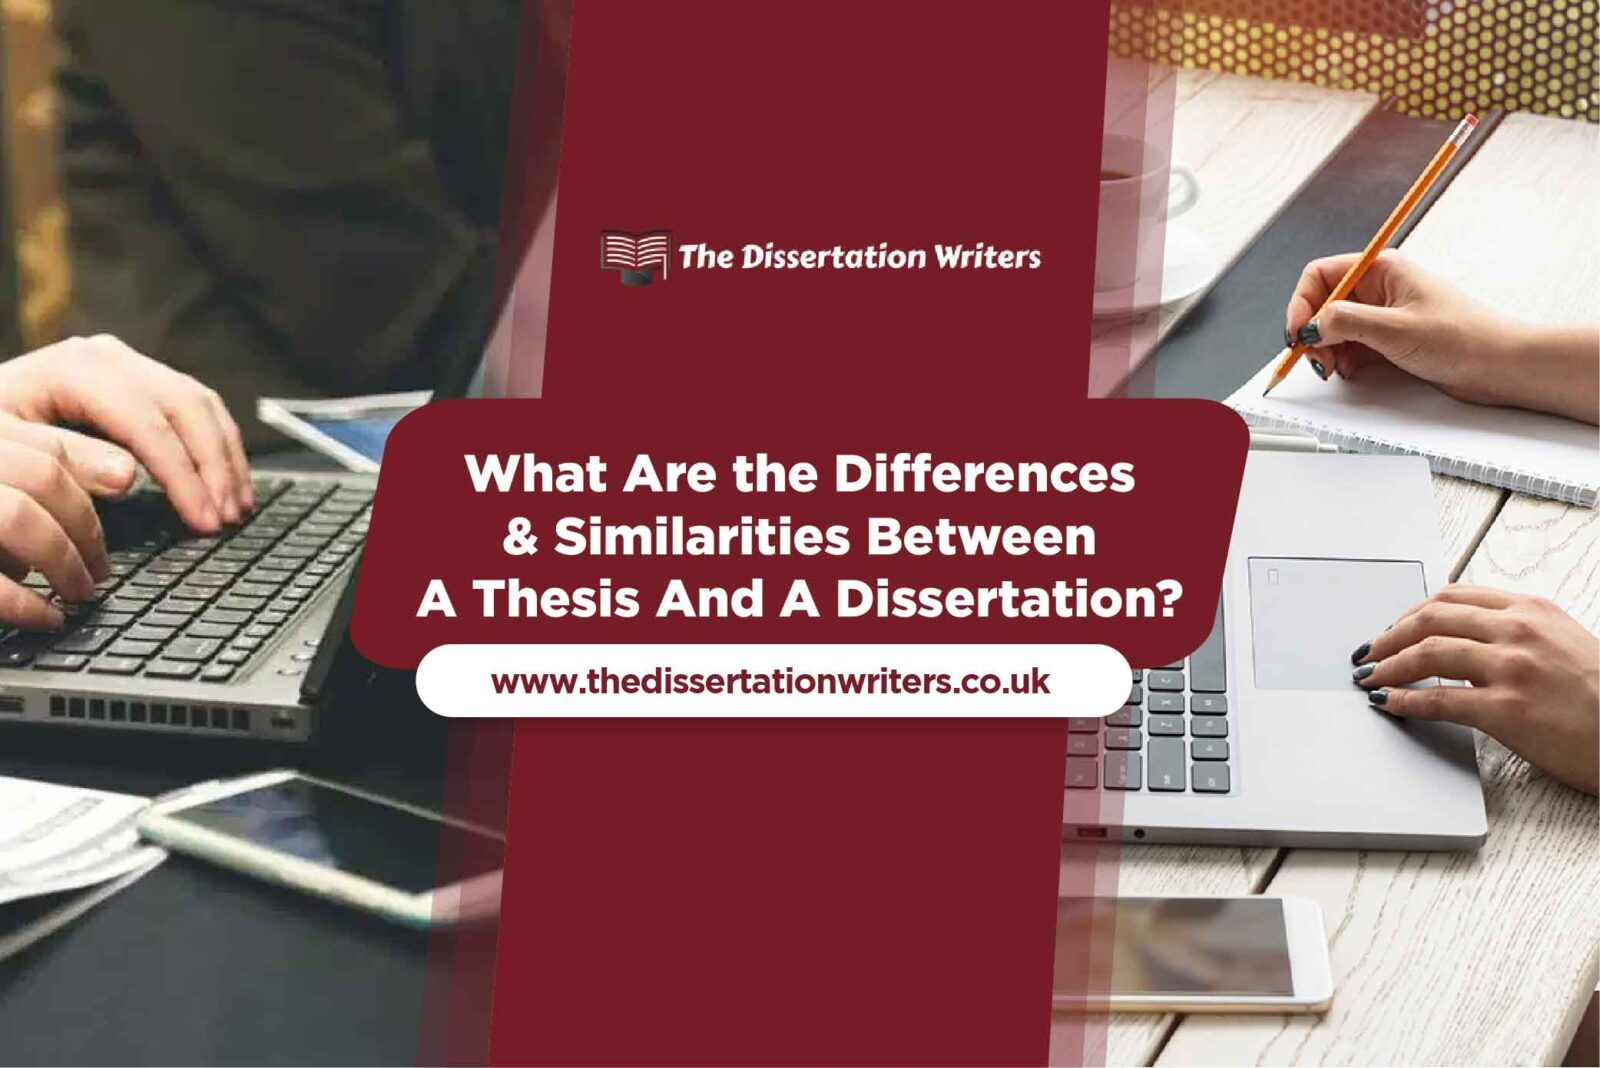 Similarities between thesis and dissertation